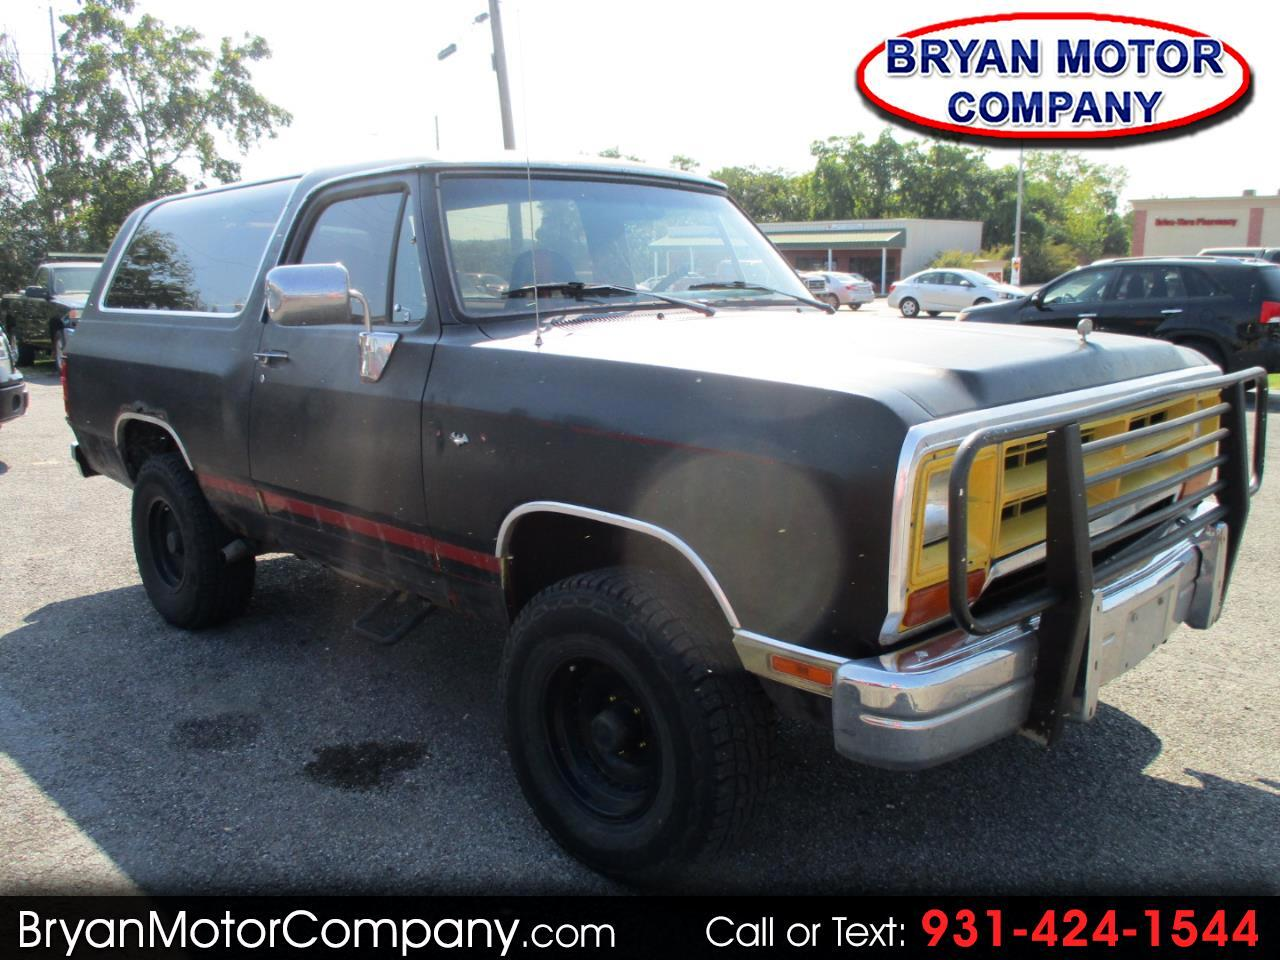 1990 Dodge Ram Charger 2dr AW150 4WD